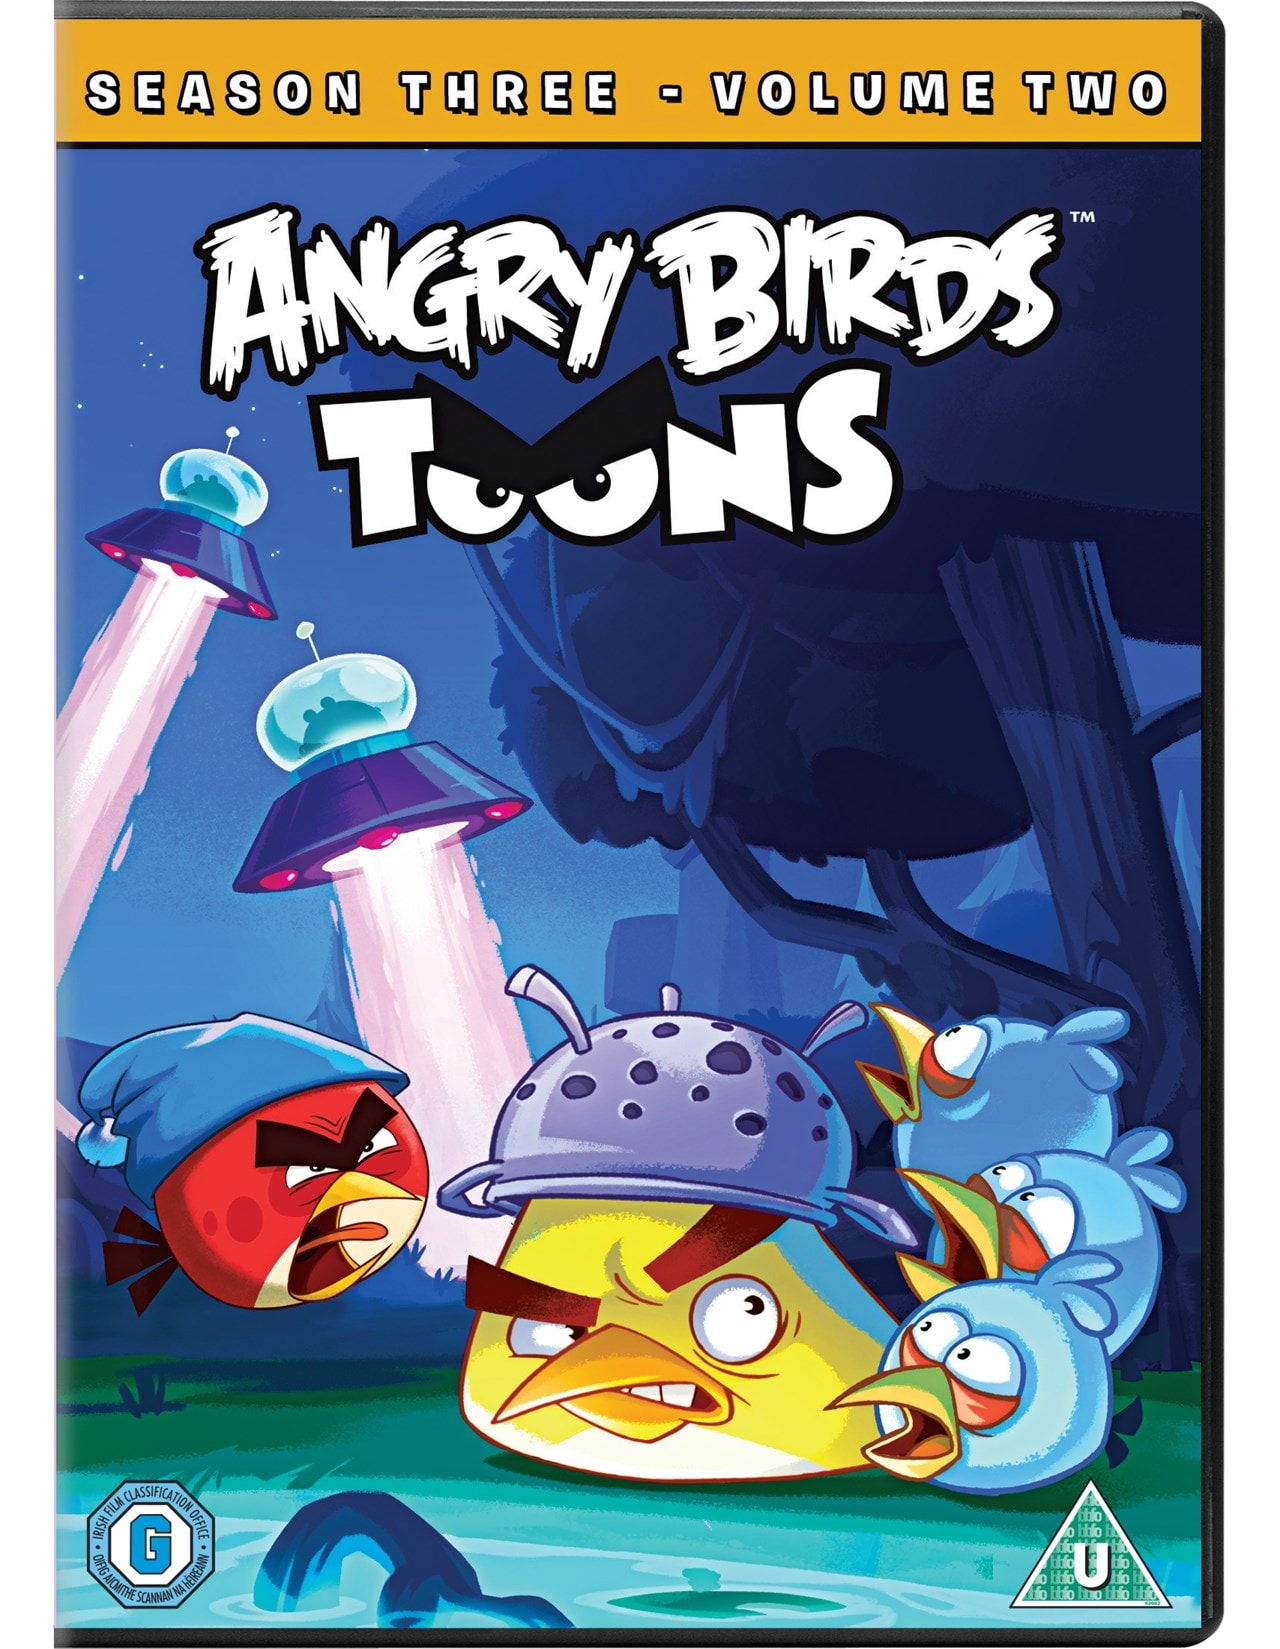 Angry Birds Toons: Season Three - Volume Two - 1